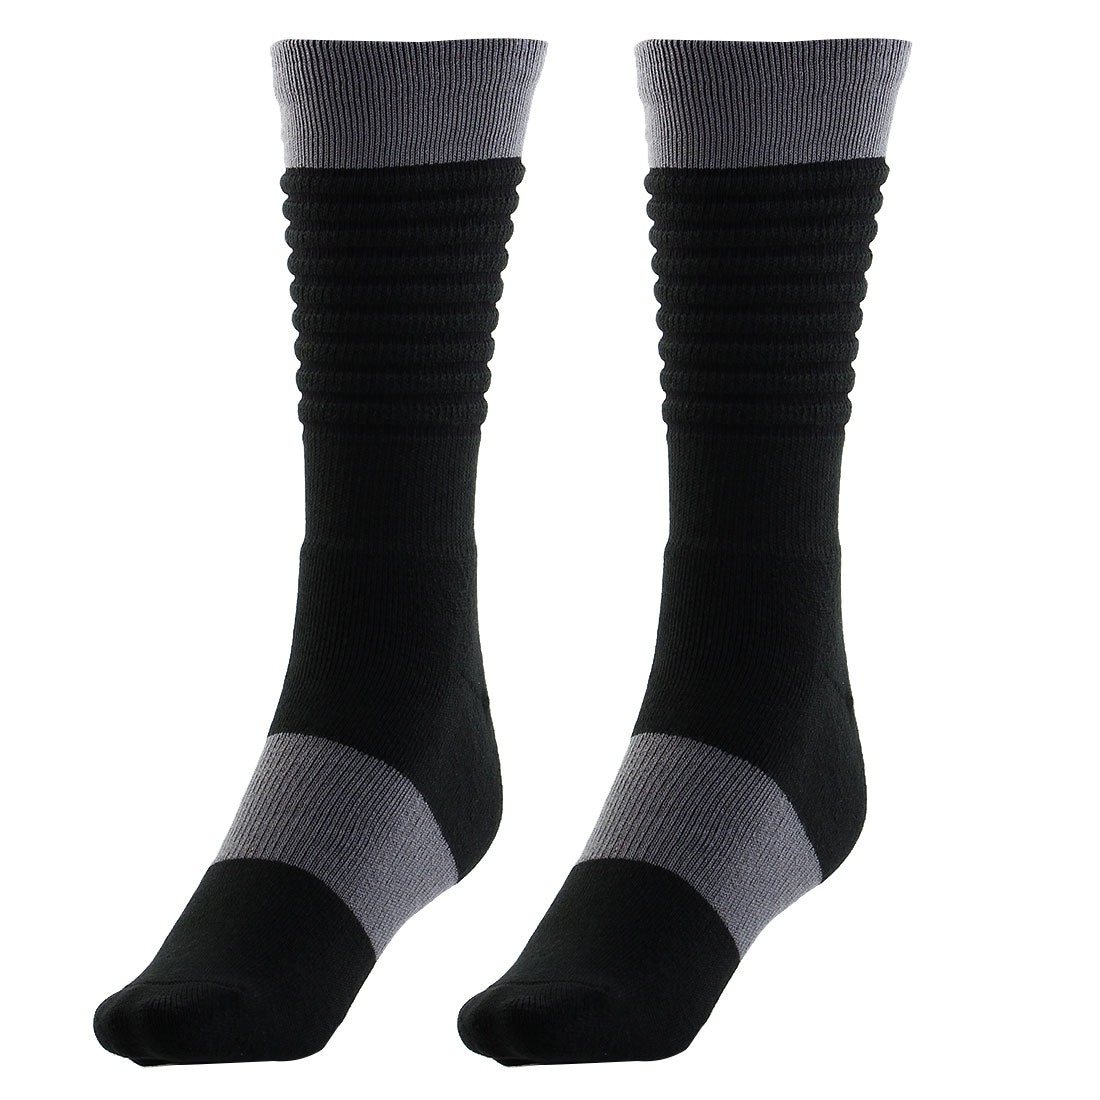 a2451588ef0 Basketball Multi Performance Running Exercise Trekking Hiking Socks Black  Pair